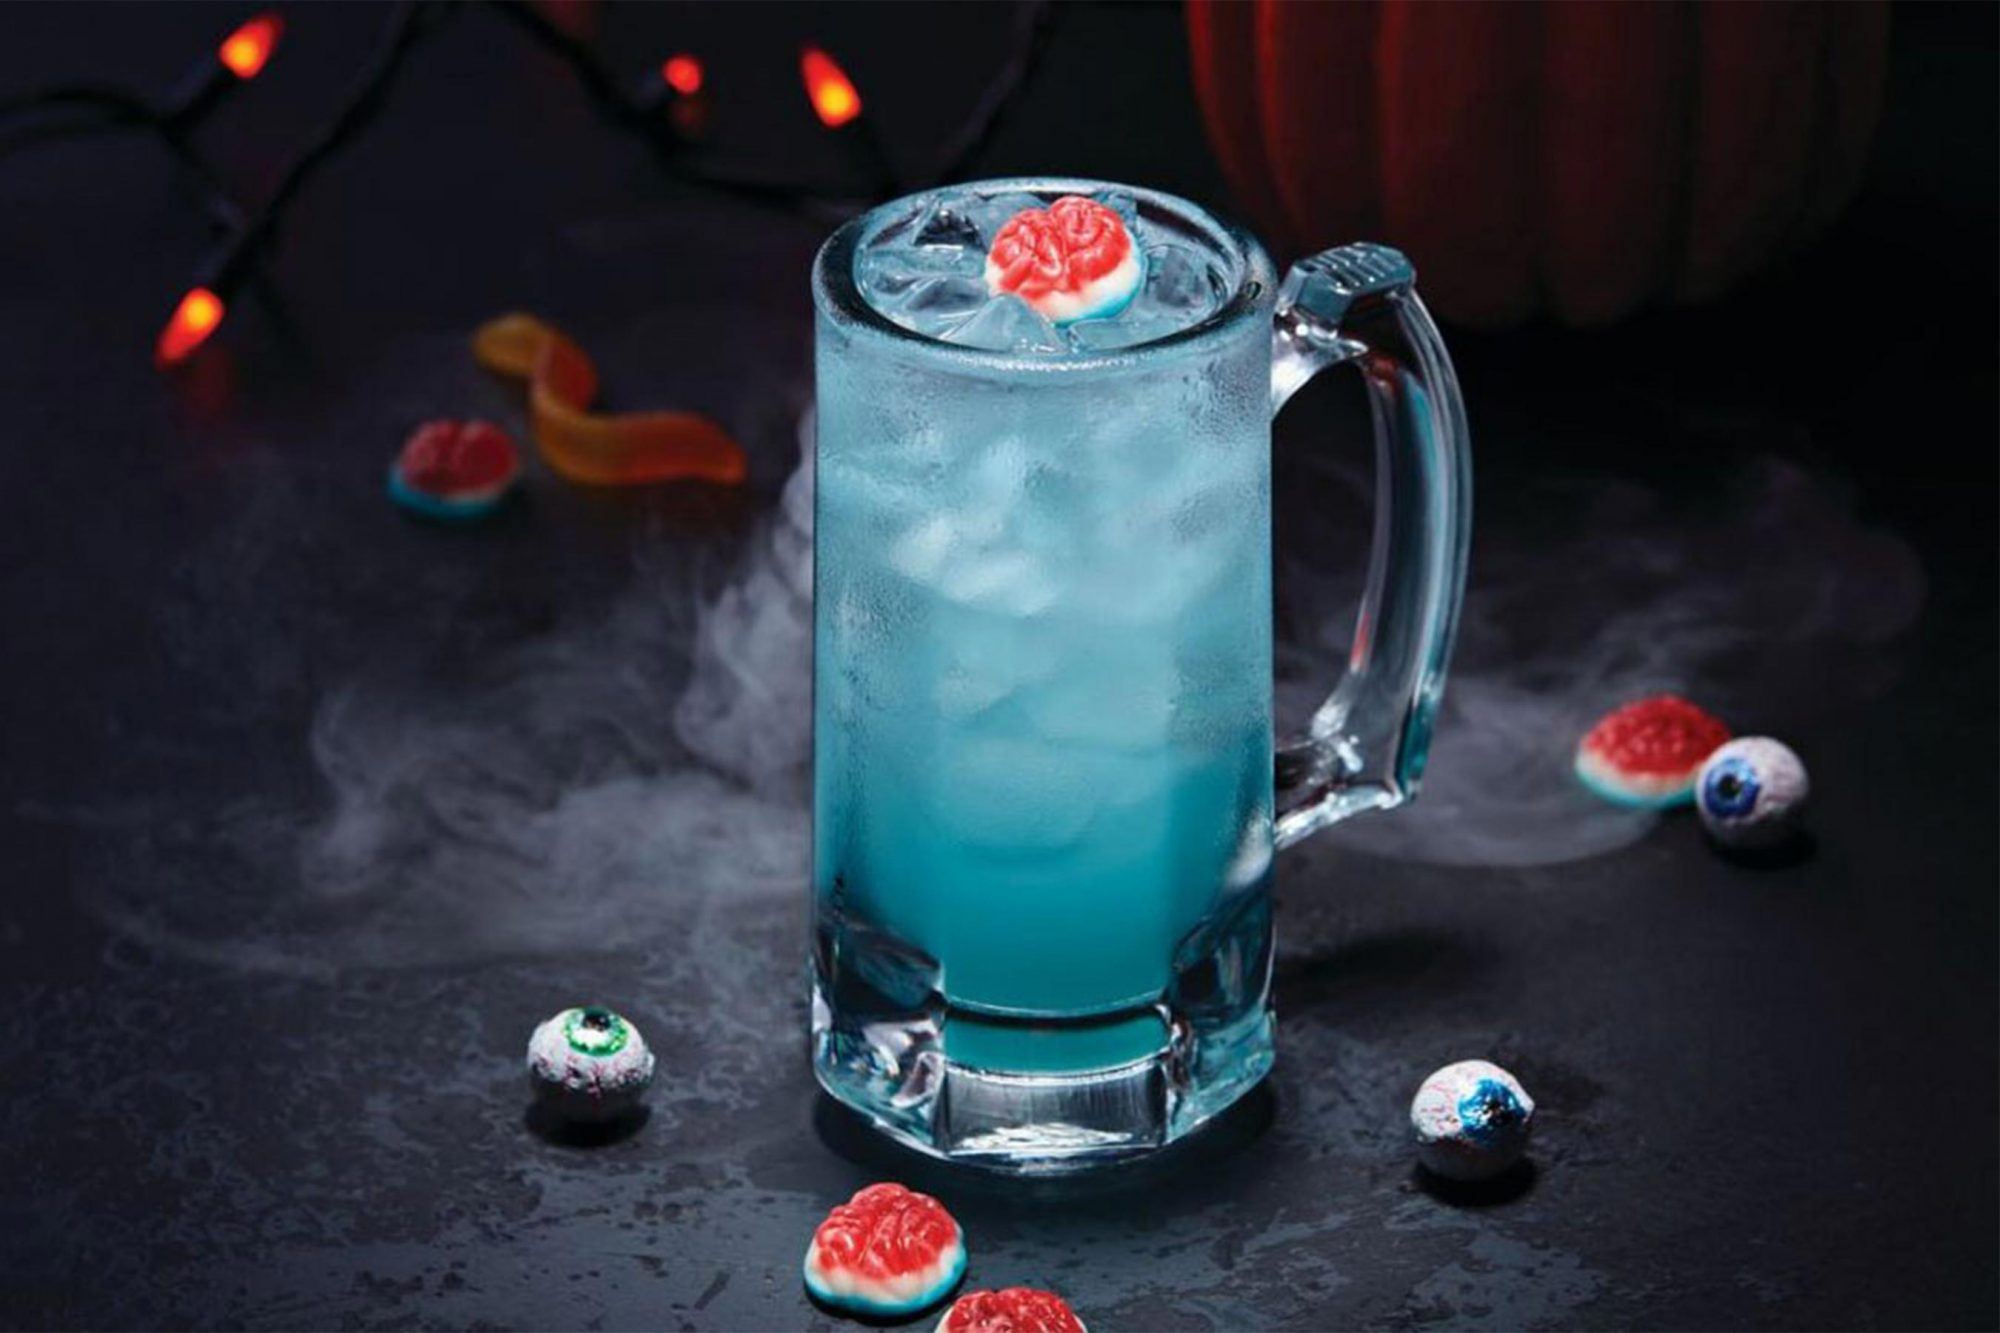 Applebee's Zombie drinkCourtesy Applebee's